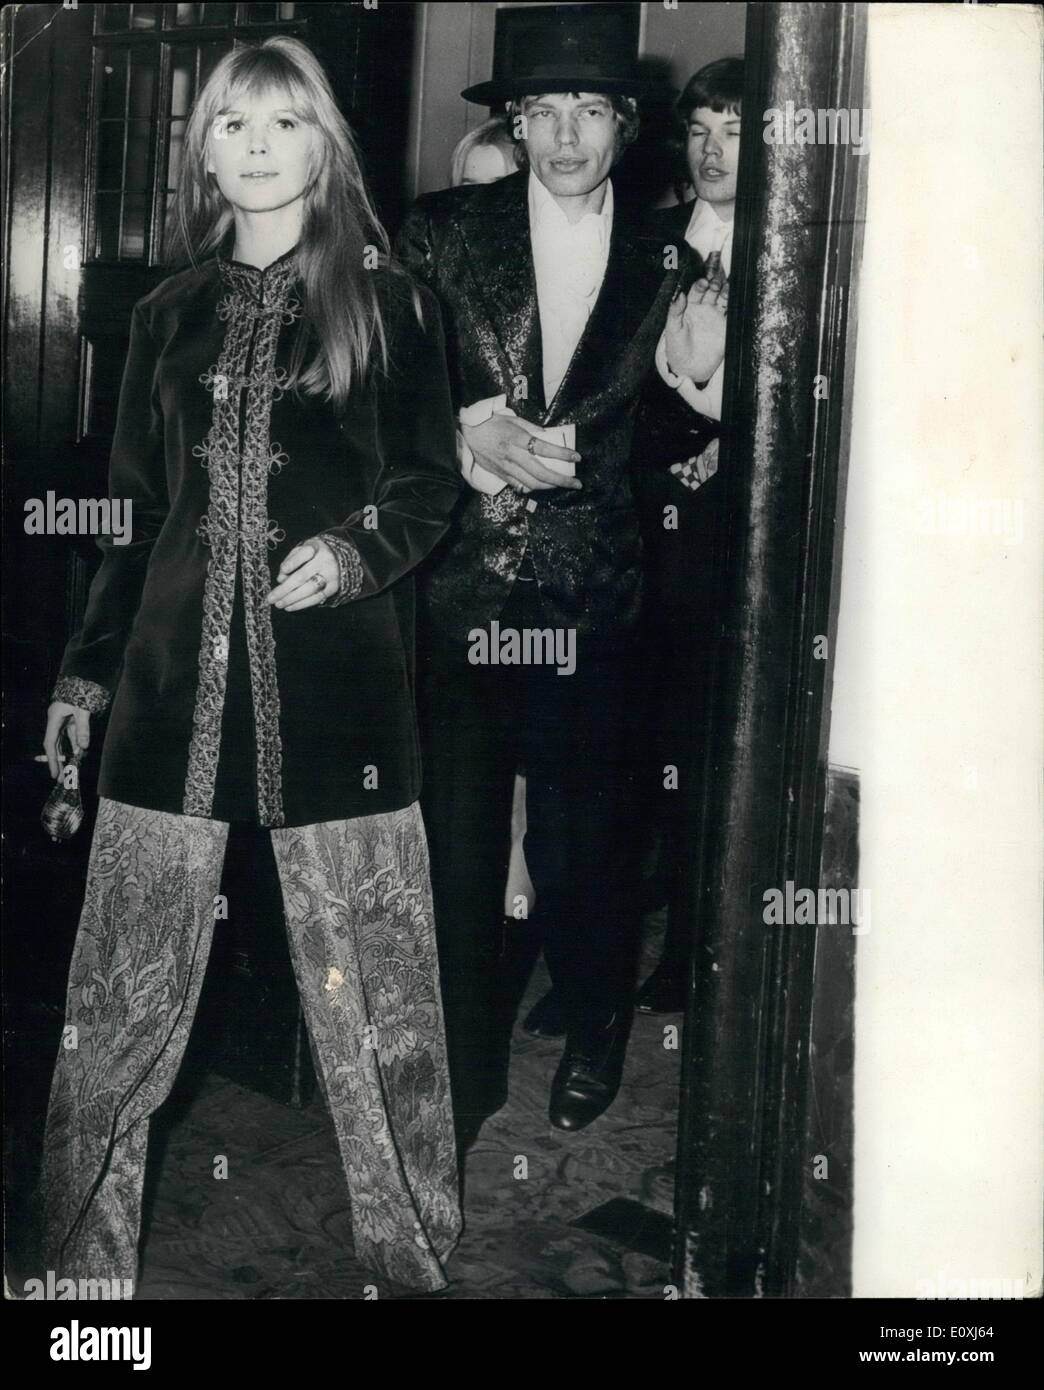 Feb. 02, 1967 - Gala Styles for Mick and Marianne: Setting their own styles for a night out at the ballet are pop star Mick Jagger, of the Rolling Stones and his friend, pop singer Marianne Faithful, pictured as they arrived at the Royal Opera House, Covent Garden, London last night, for the Royal Ballet gala performance. Mick is in a black sombrero and a jacket covered with multi-coloured embroidery. Marianne wears a braided velvet tunic with wide floral pants. The couple arrived just as the performance of was starting and they were hustled to their seats - Stock Image